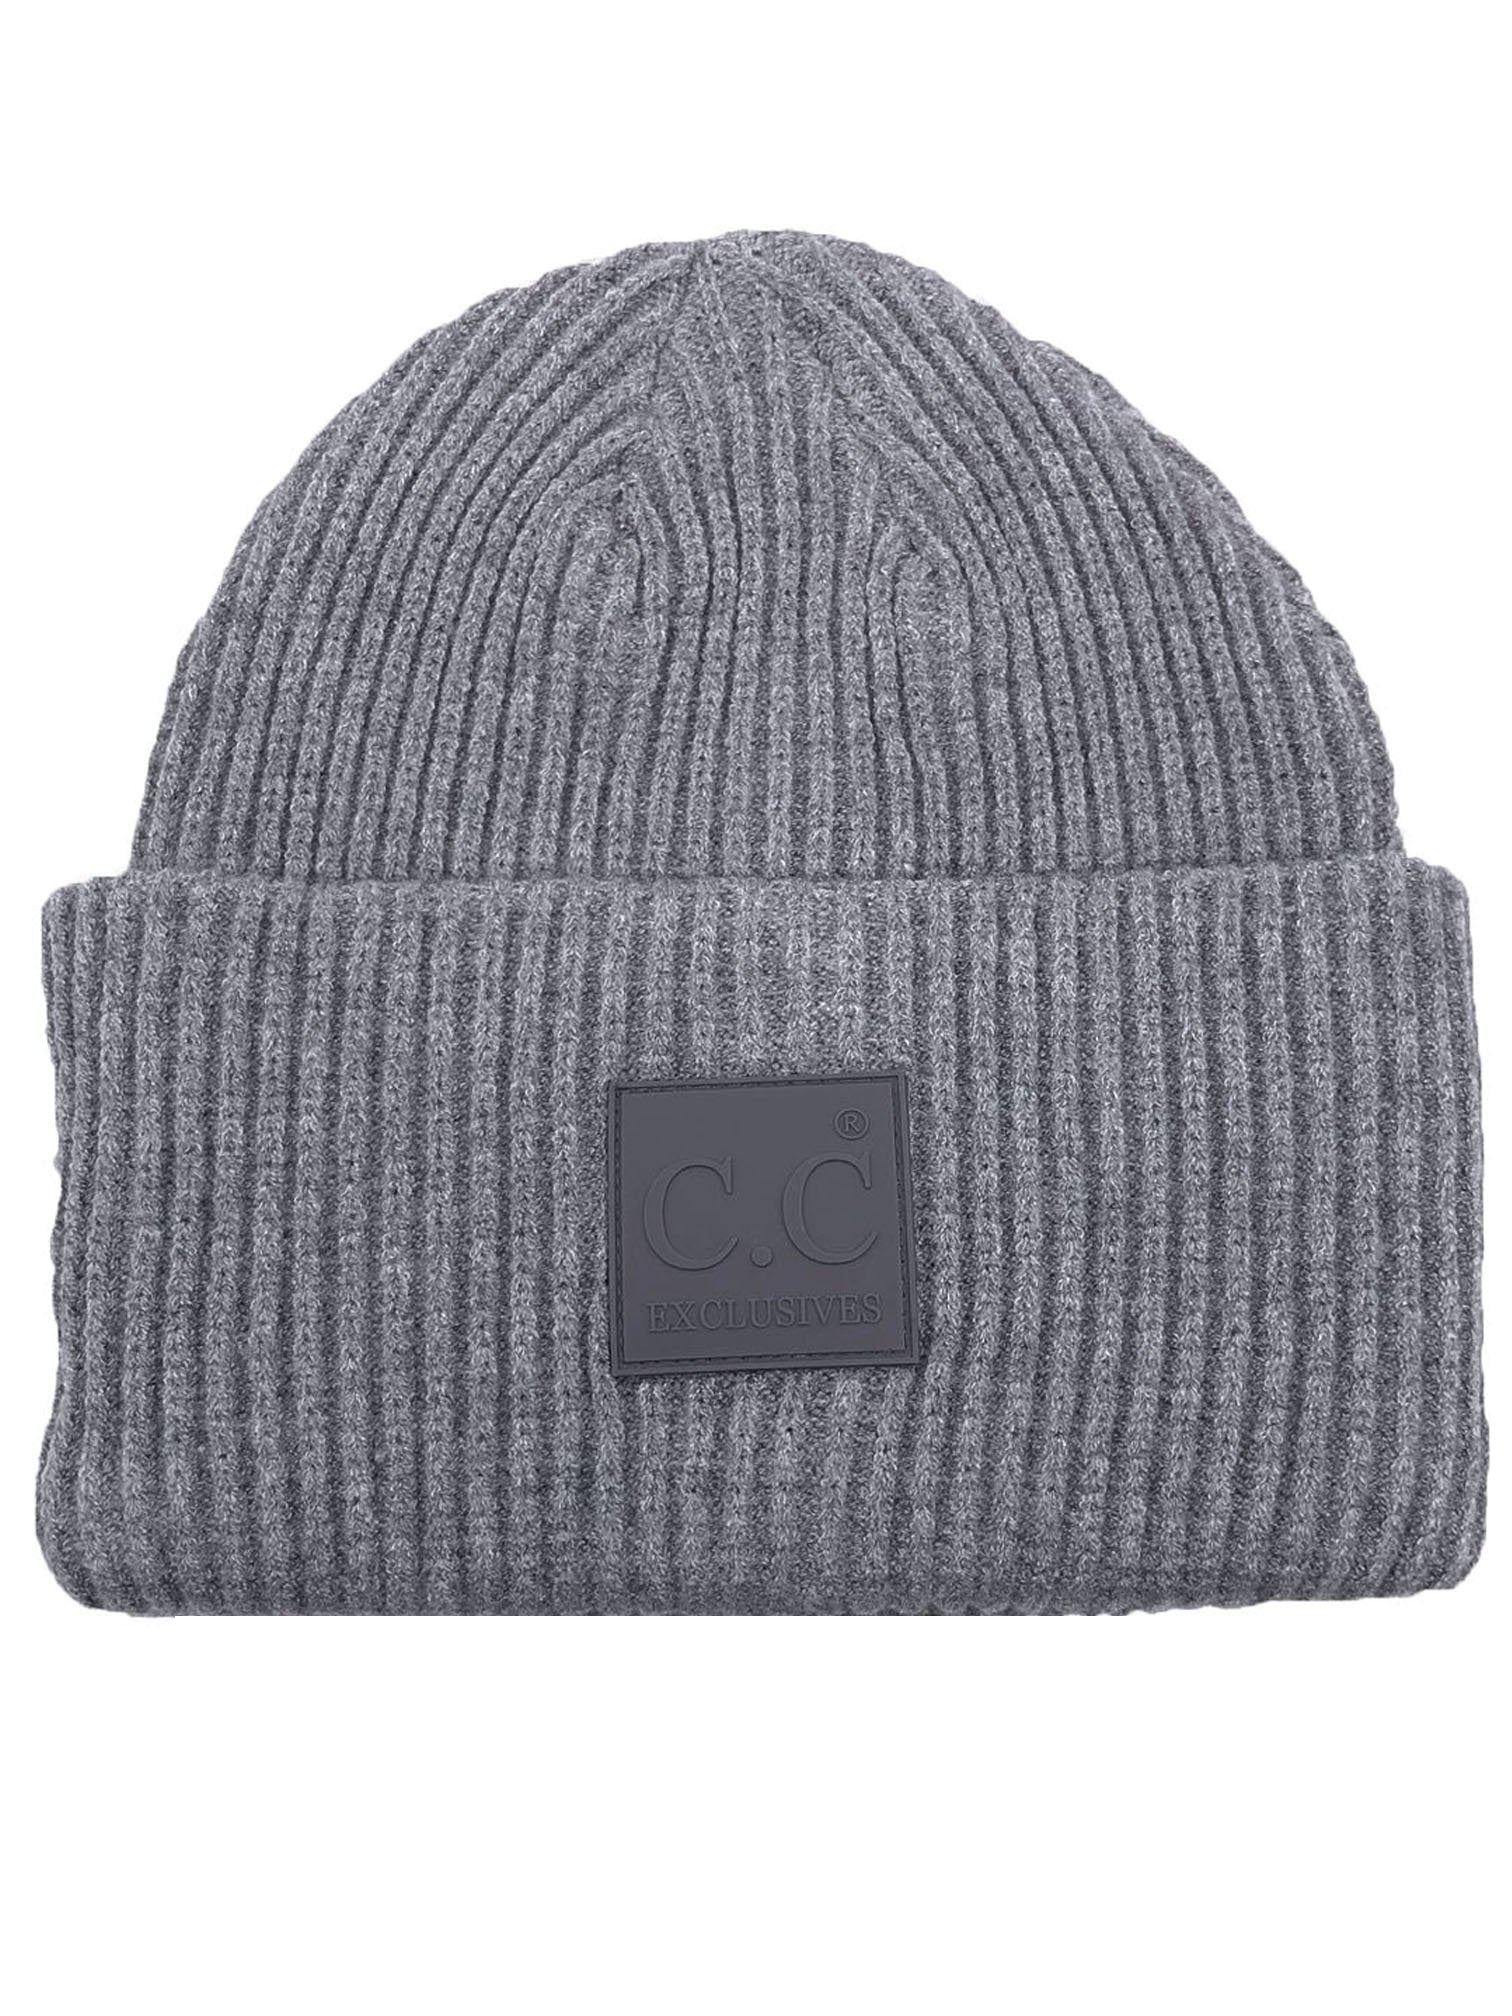 HAT-7007 Beanie with Rubber Patch Lt Melange Grey